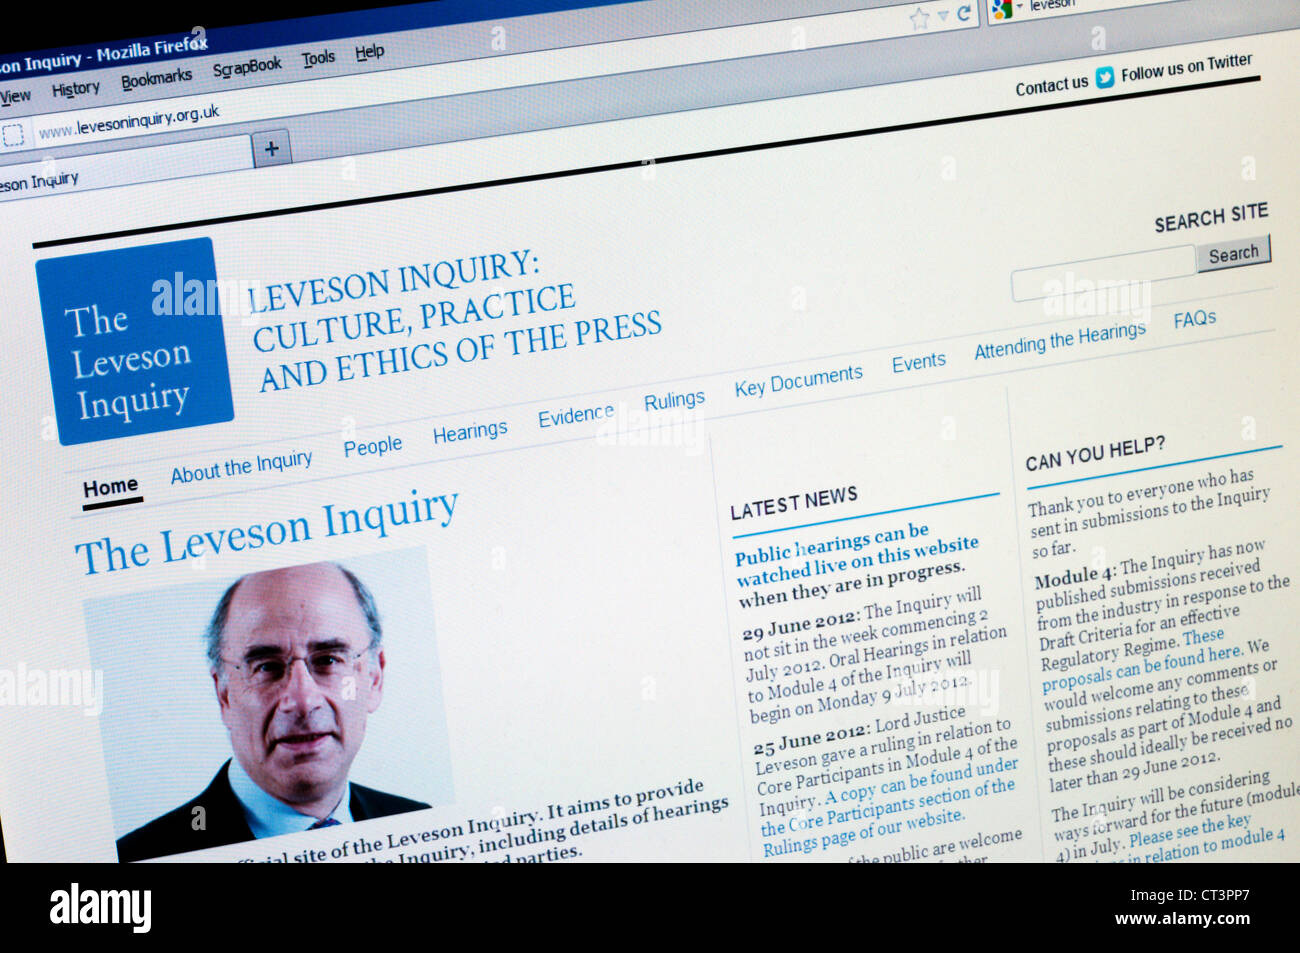 The web site of the Leveson Inquiry into the Culture, Practice and Ethics of the Press. - Stock Image